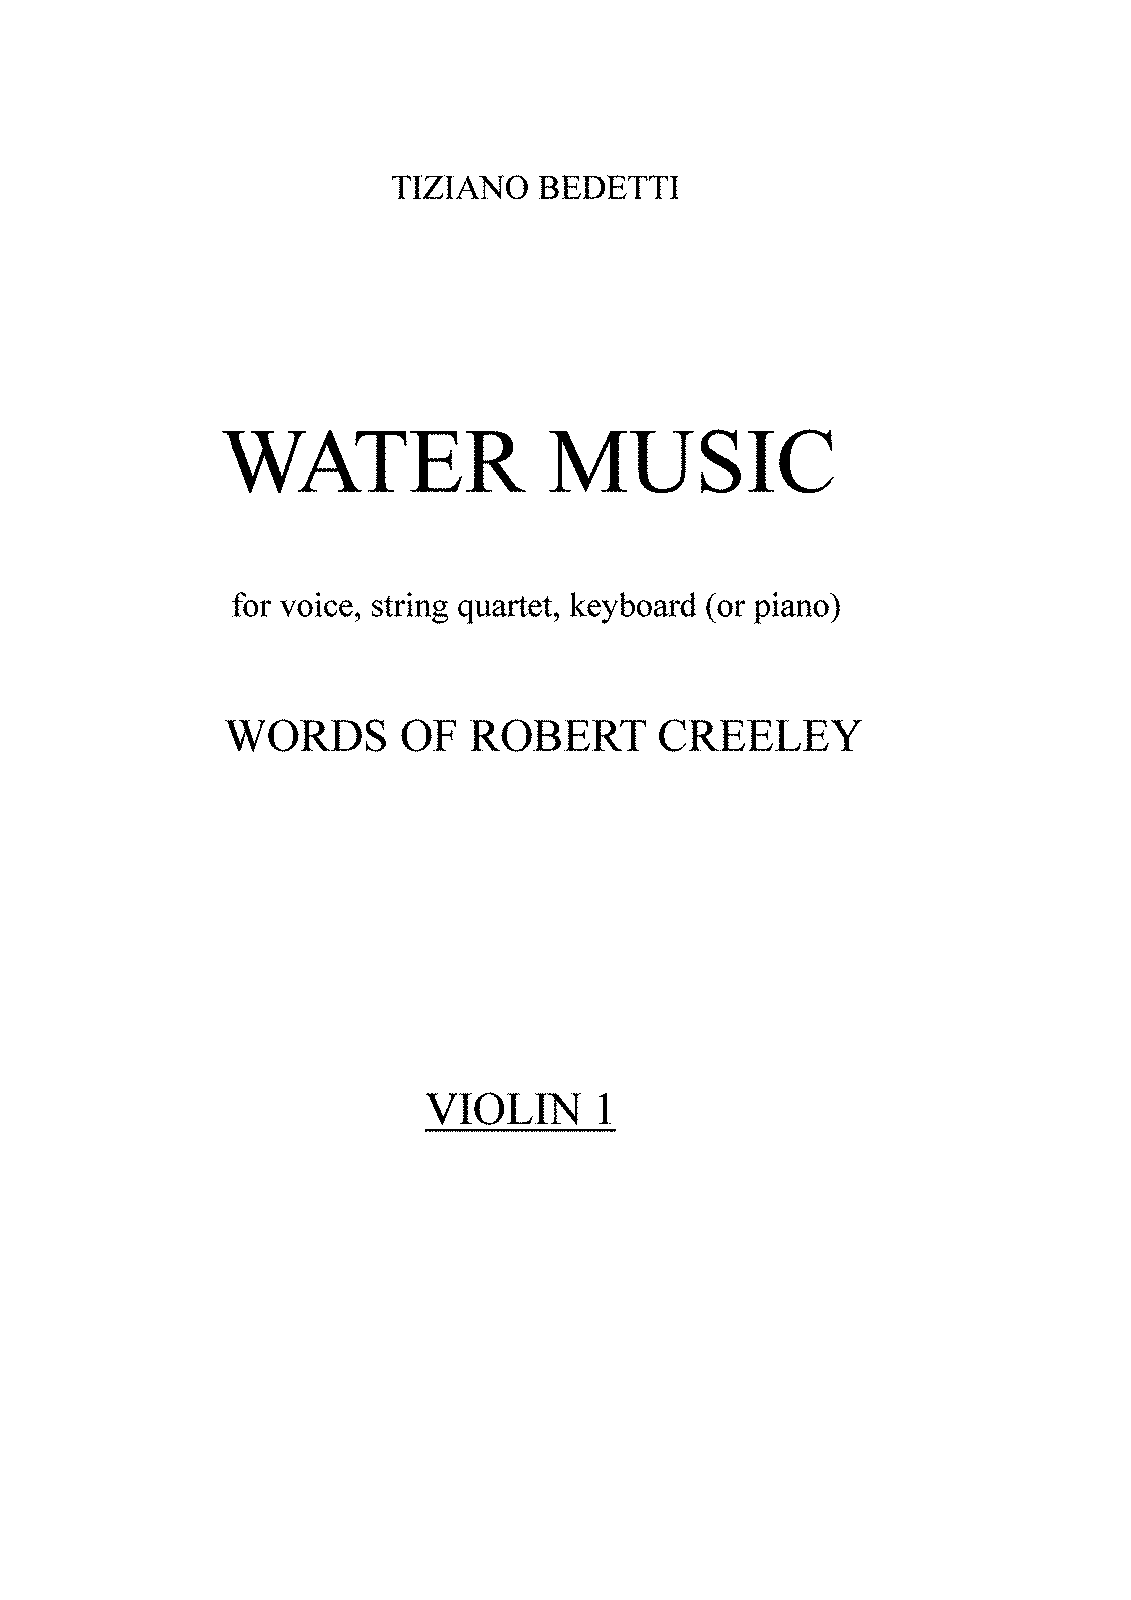 PMLP400394-Bedetti - Water Music - Violin 1 part.pdf